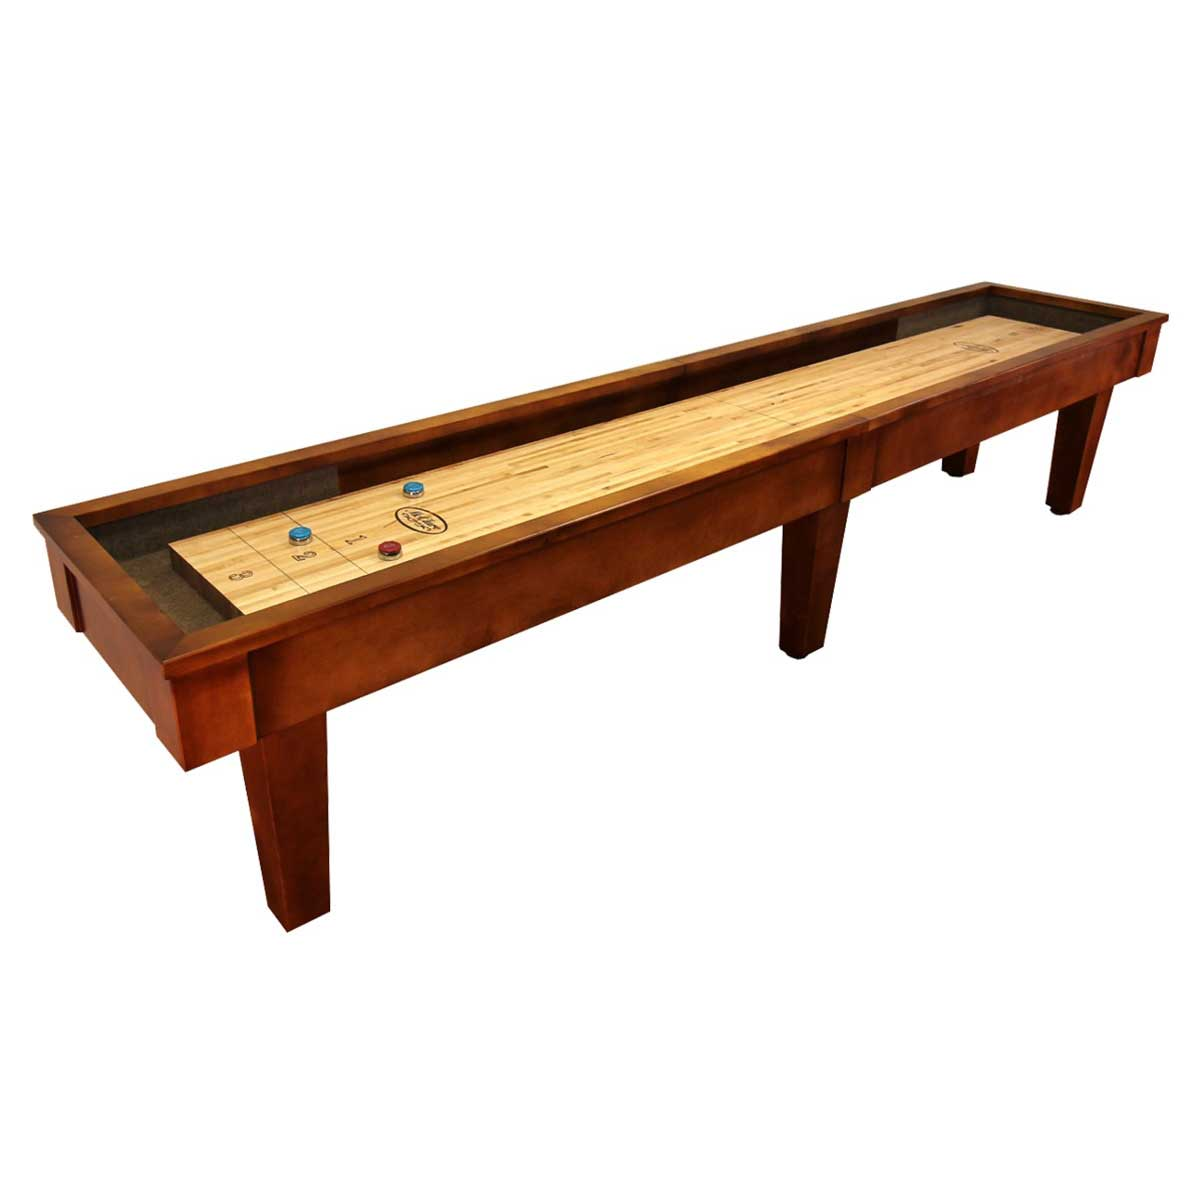 12 Foot Sloan Maple Shuffleboard Table